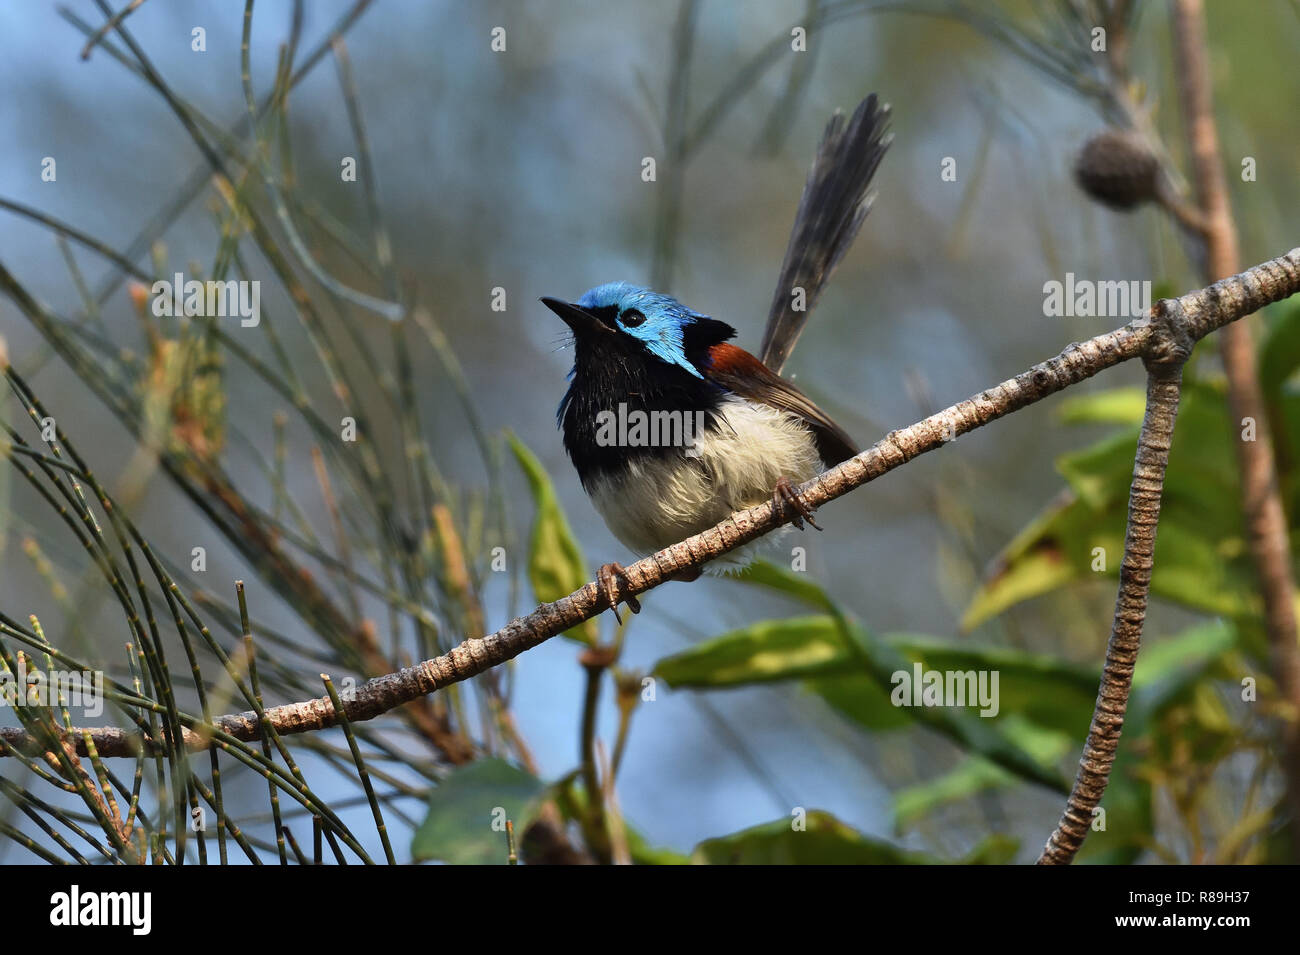 A slightly wet Australian, Queensland Male Variegated Fairy-wren ( Malurus lamberti ) perched on a tree branch - Stock Image